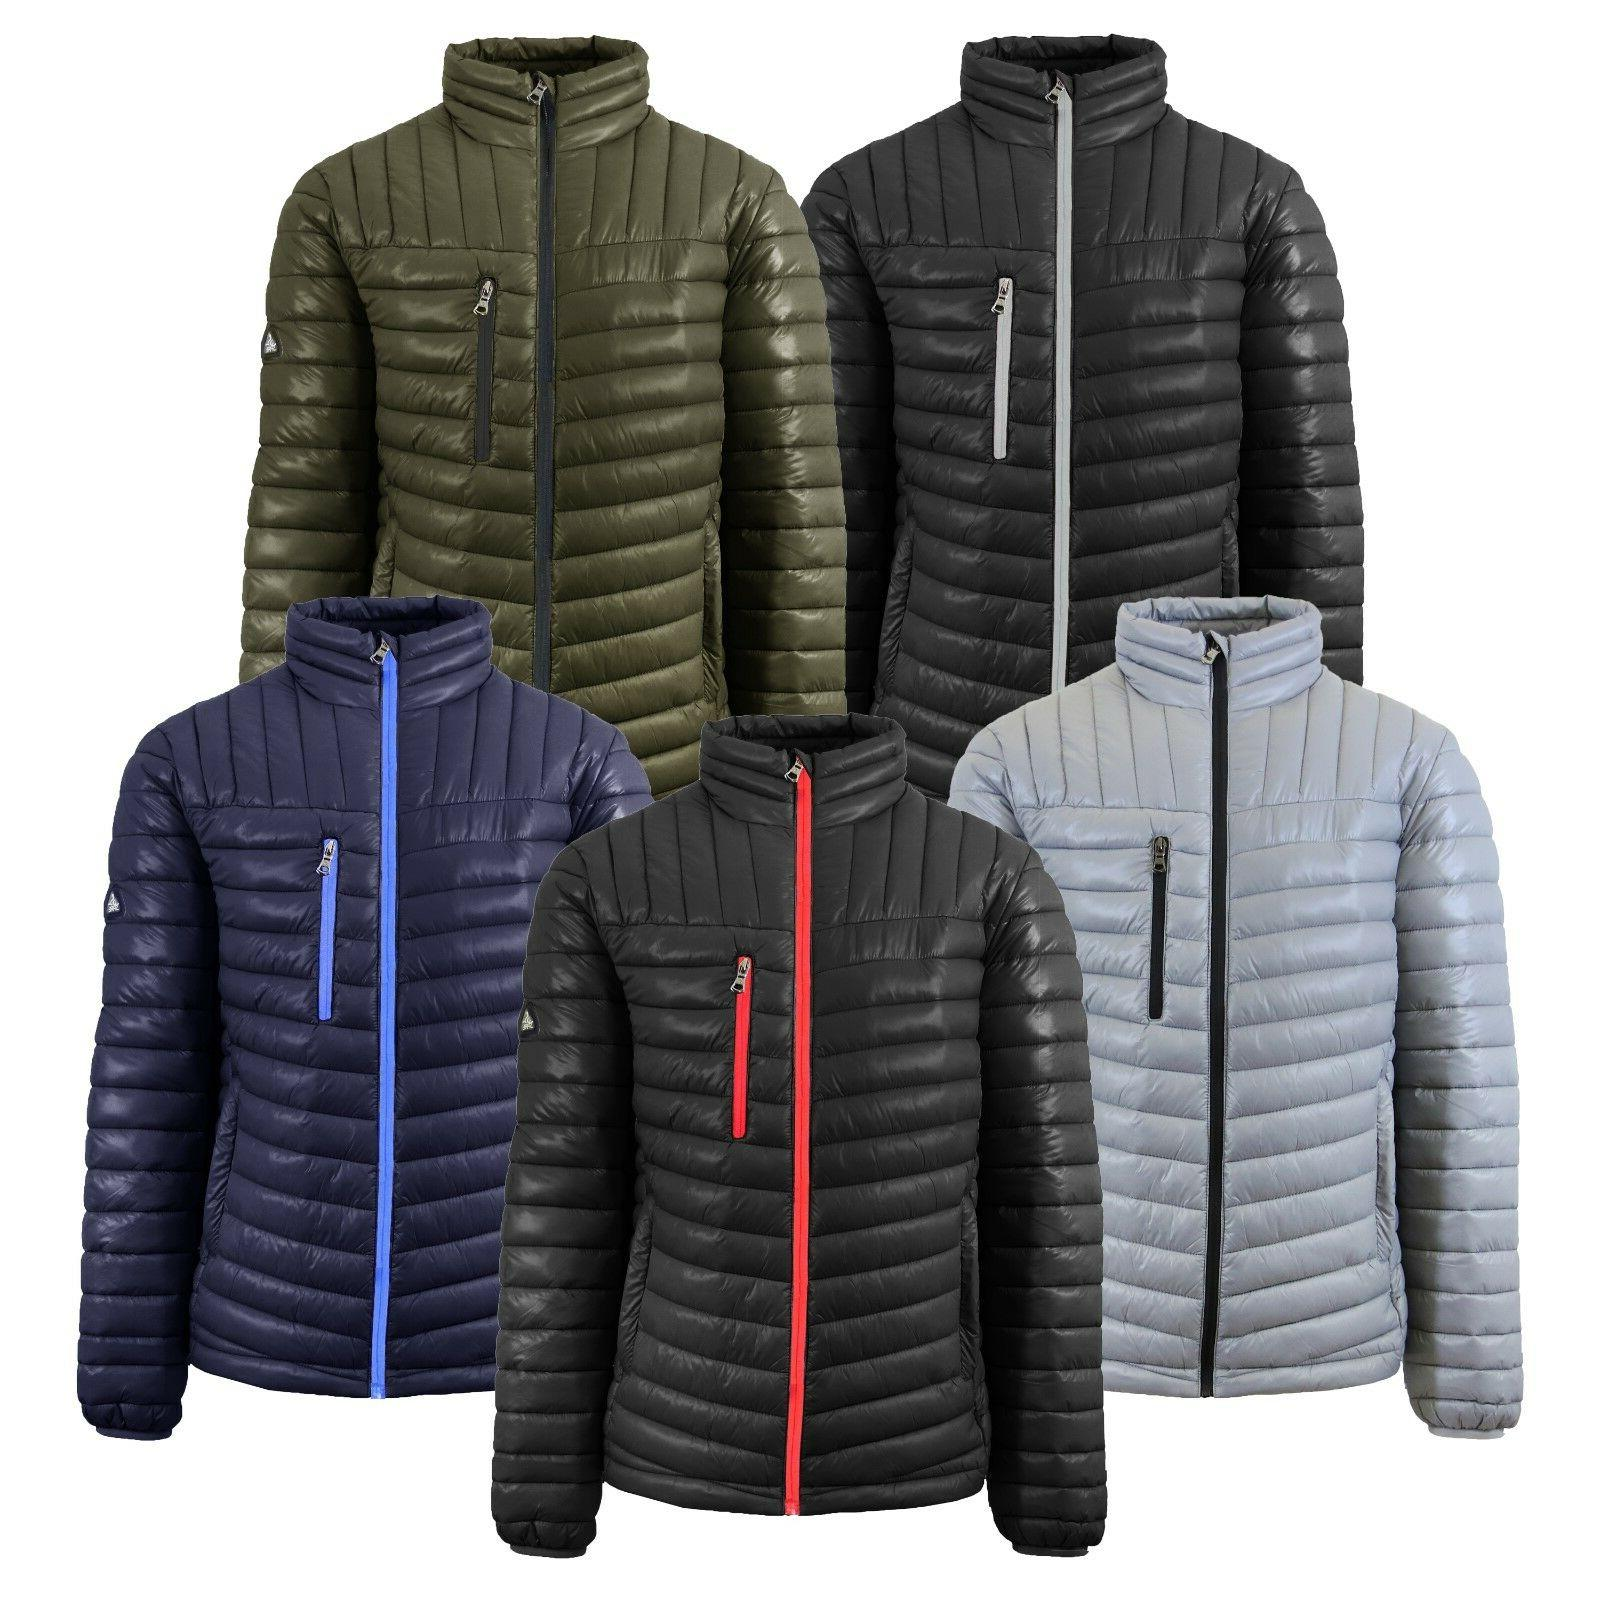 Mens Puffer Jacket Coat Outerwear Layer Cold Contrast Trim Z